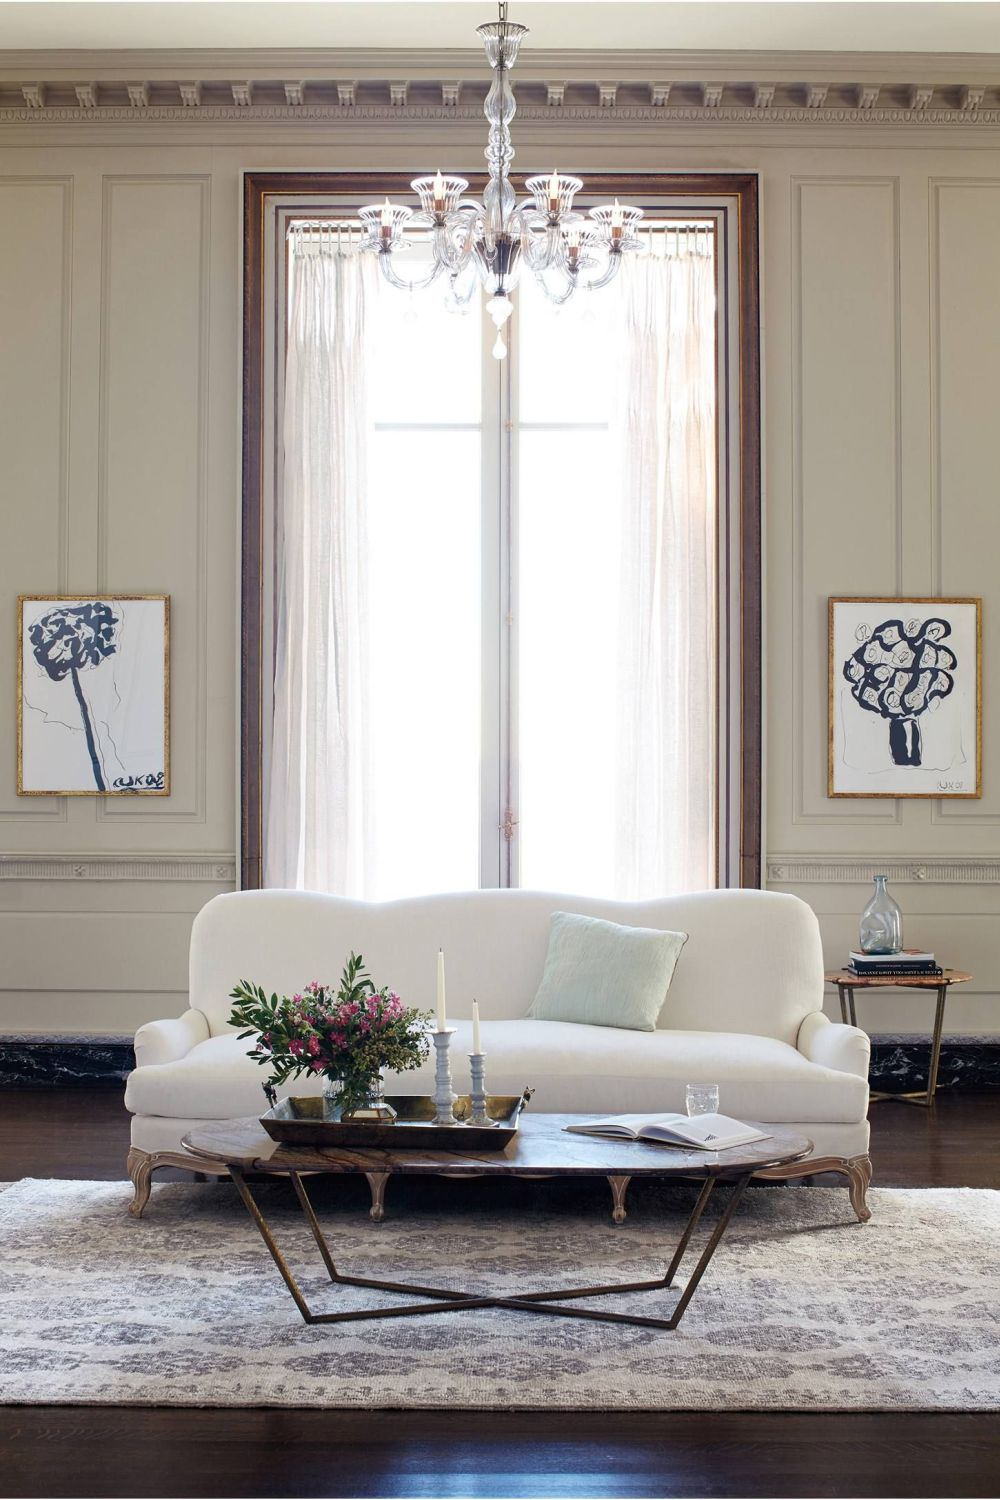 hardwood framed linen sofa the great seating debate about sofa versus couch: which one is better